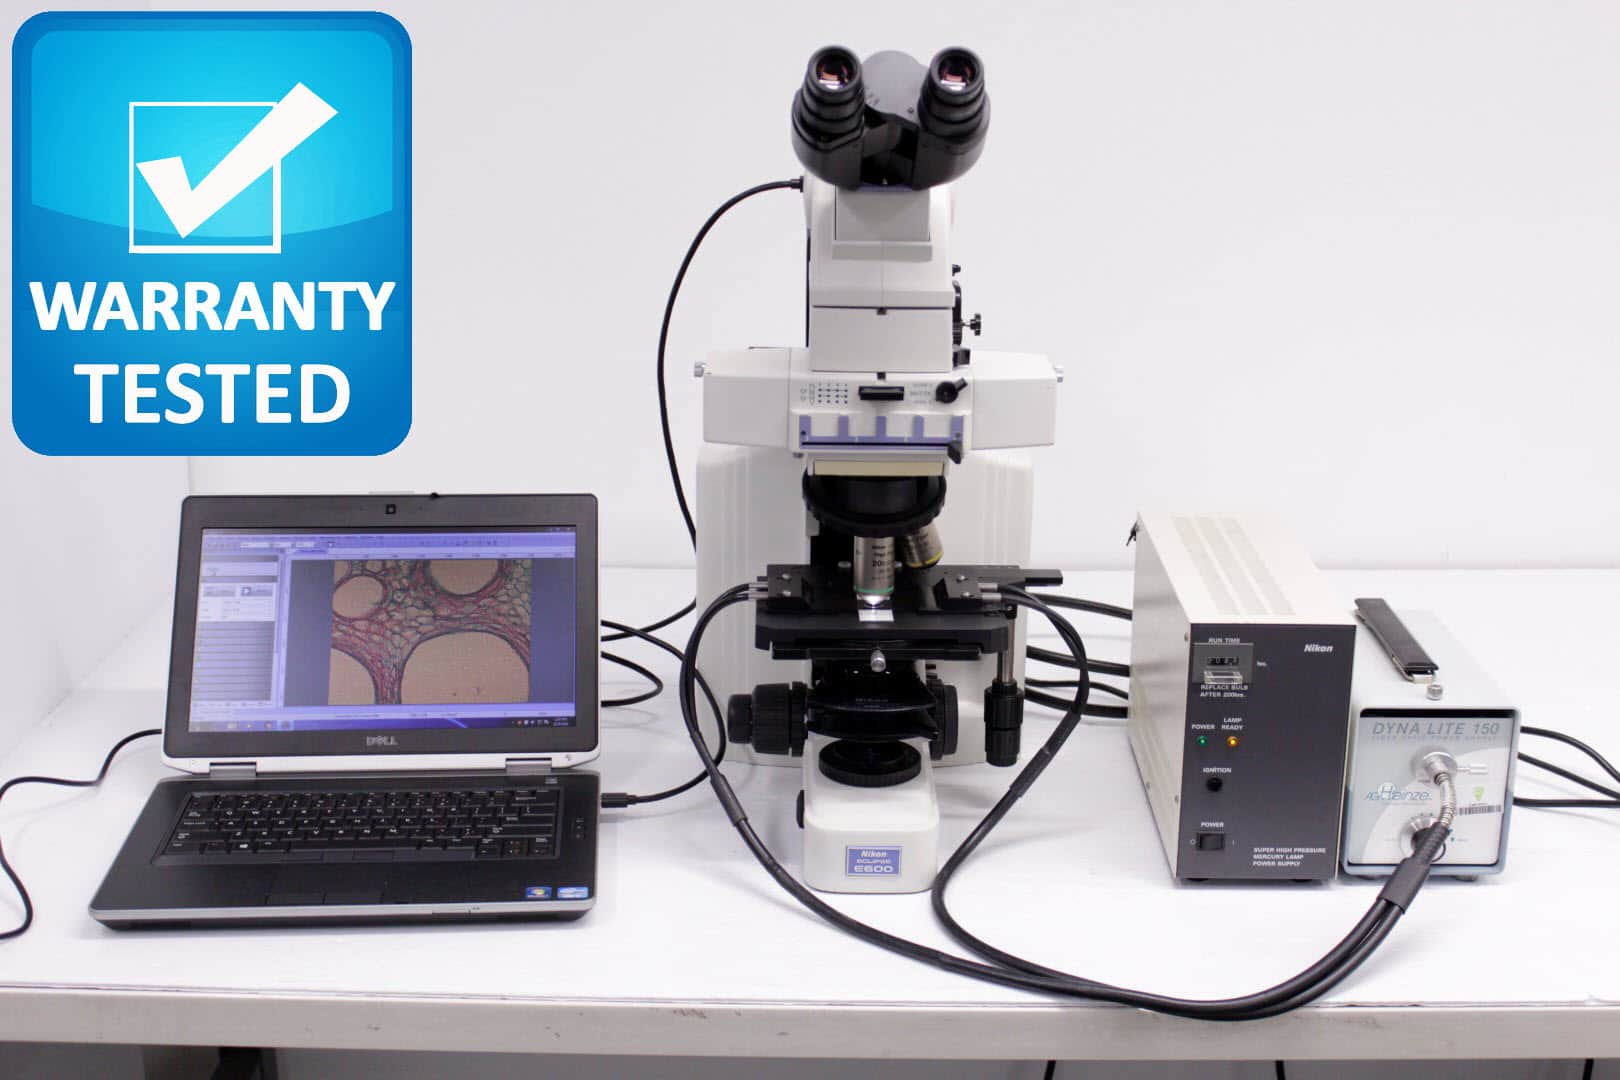 Nikon E600 Microscope with Fluorescence E600W